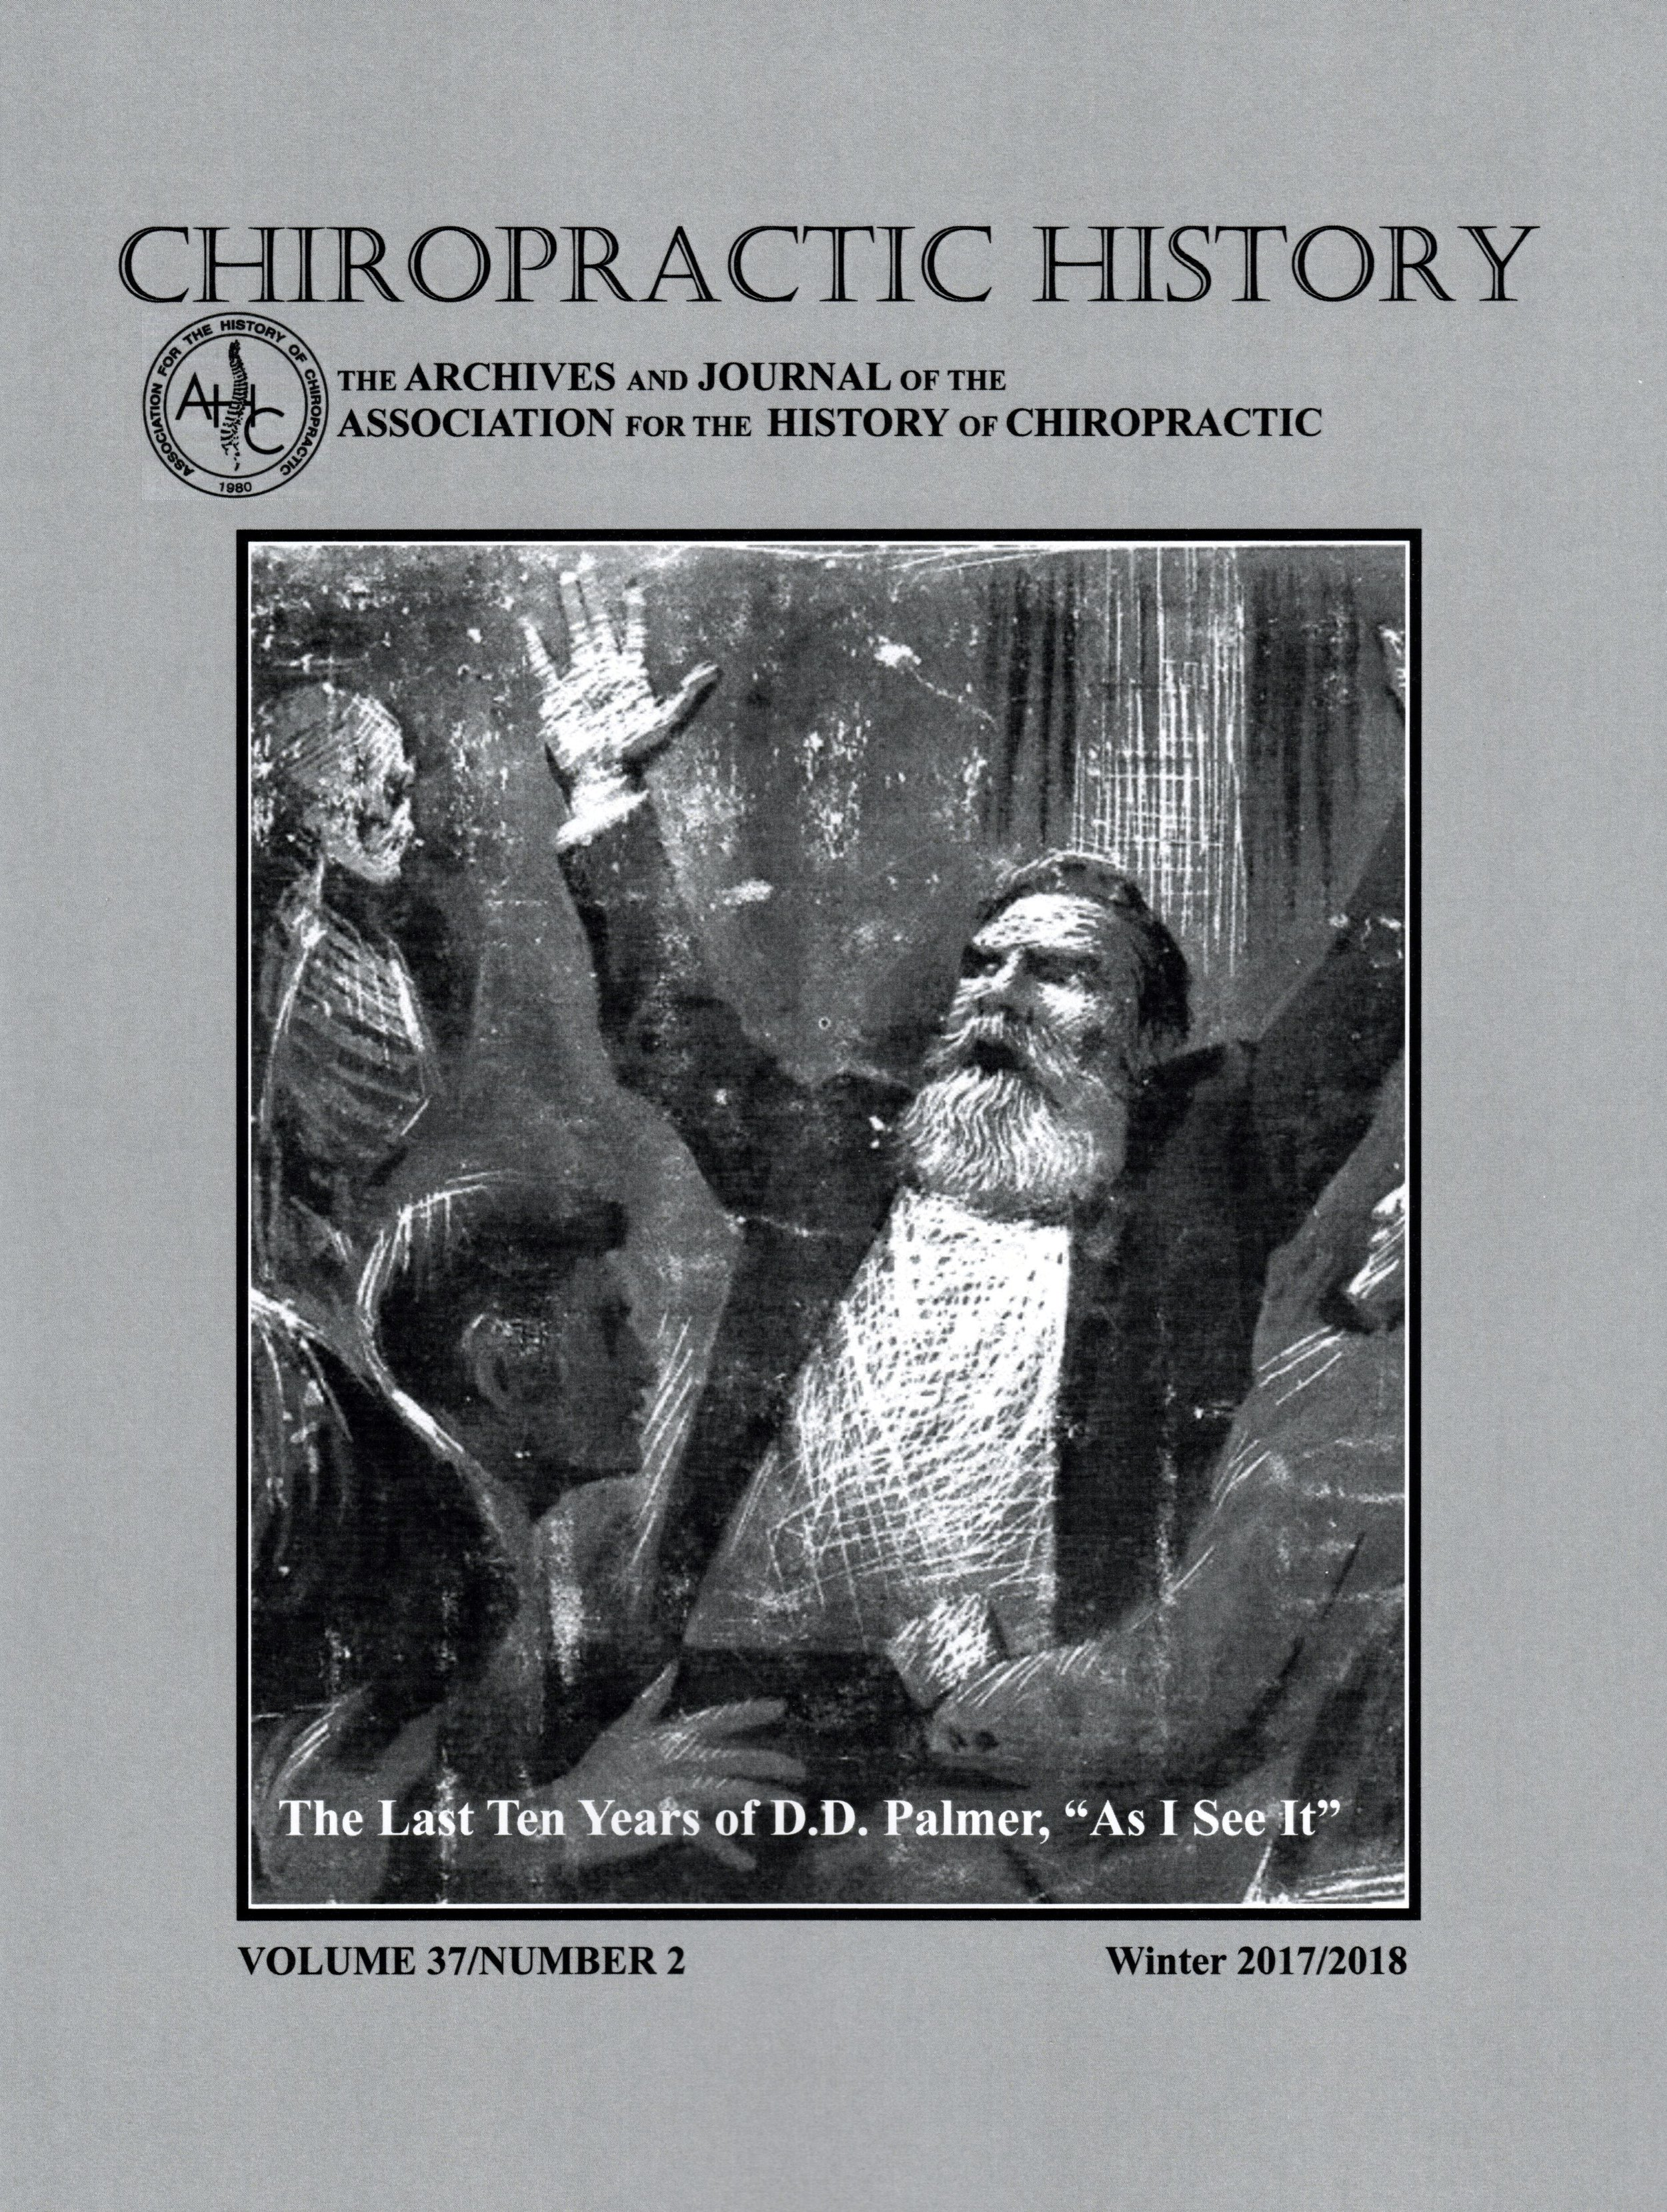 Cover of the journal 'Chiropractic History' (Winter 2017/2018)